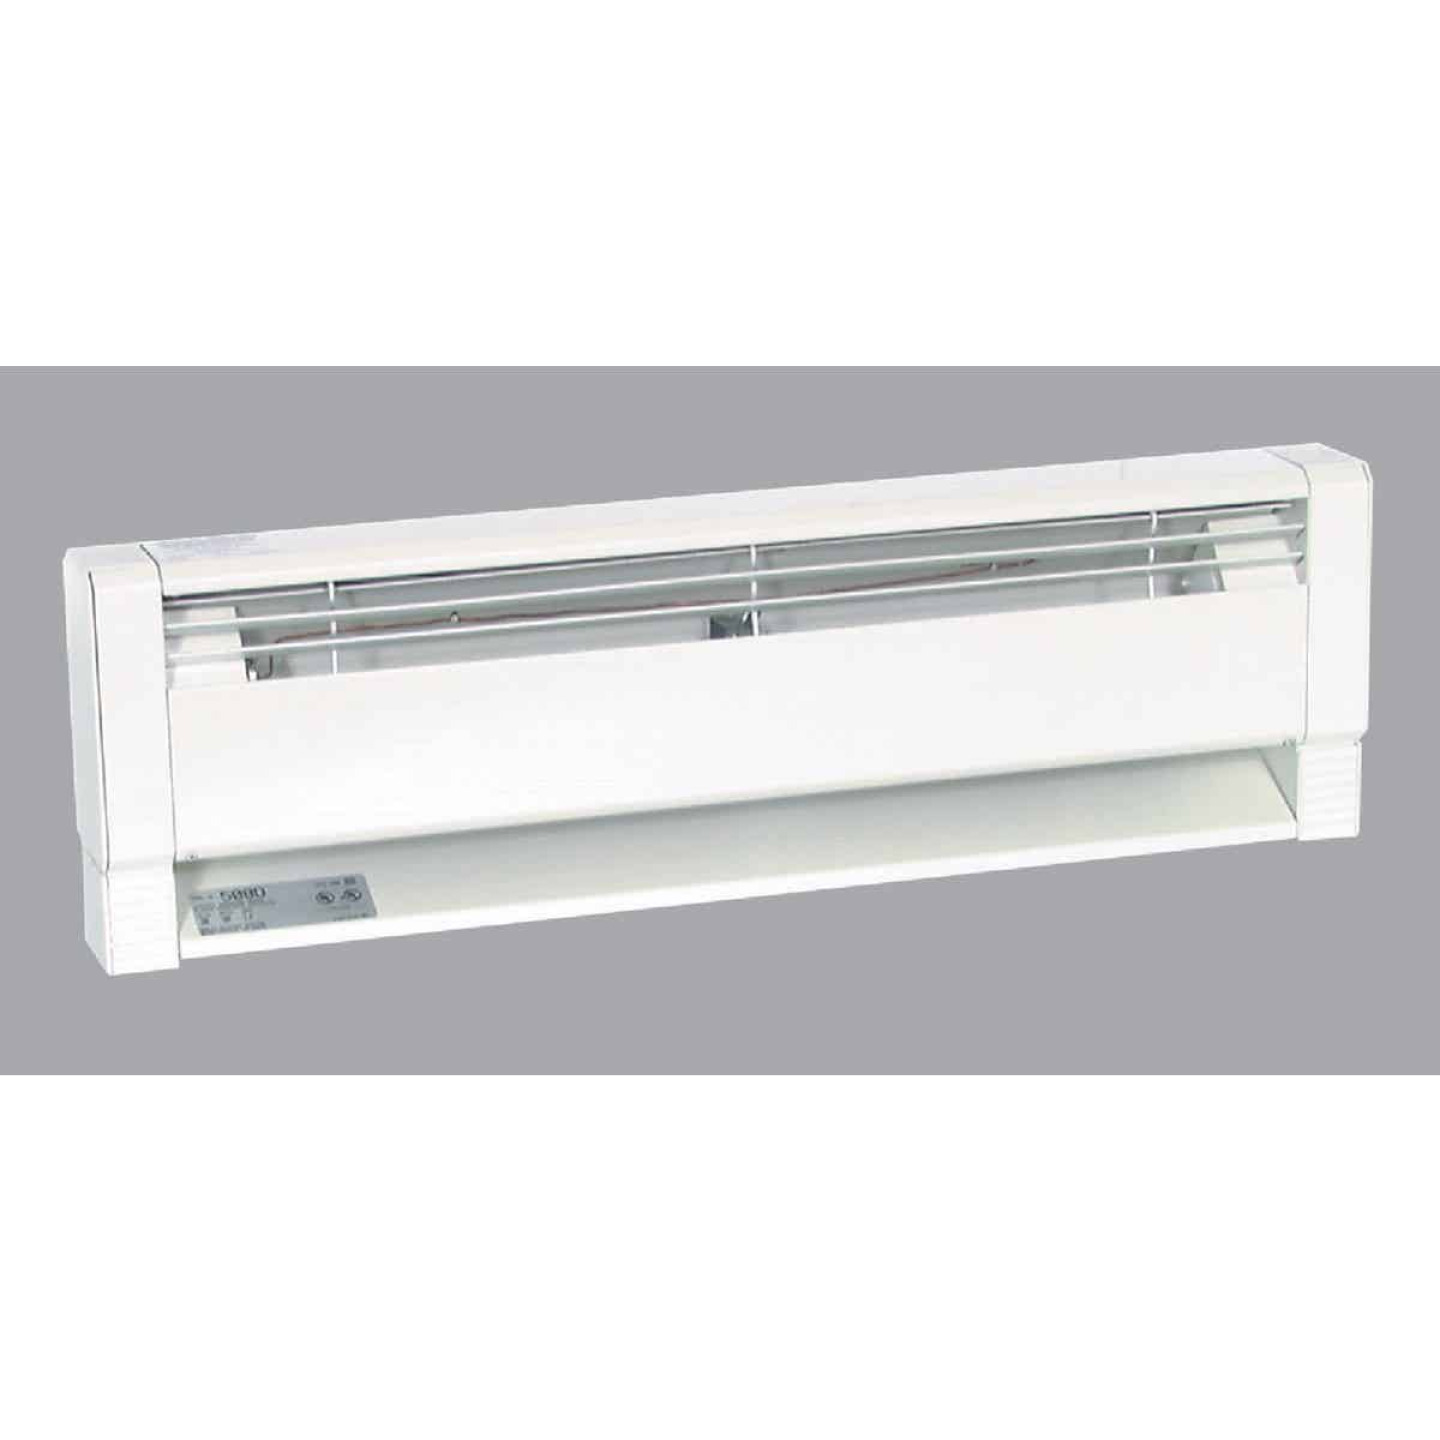 Fahrenheat 70 In. 1500-Watt 240-Volt Hydronic Electric Baseboard Heater, White Image 1